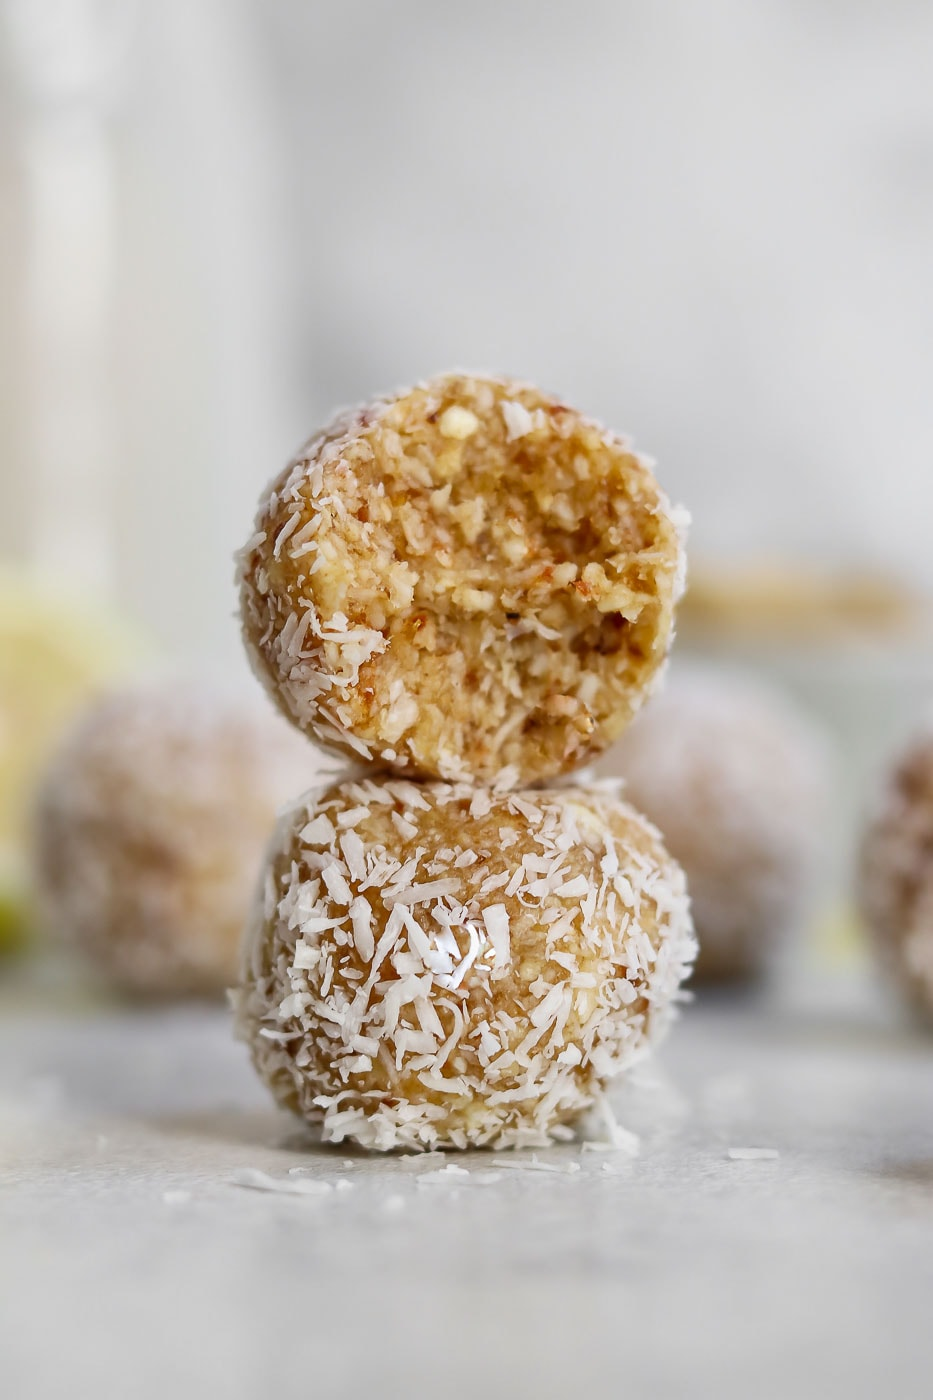 Two energy balls stacked on each other with one bite taken out.